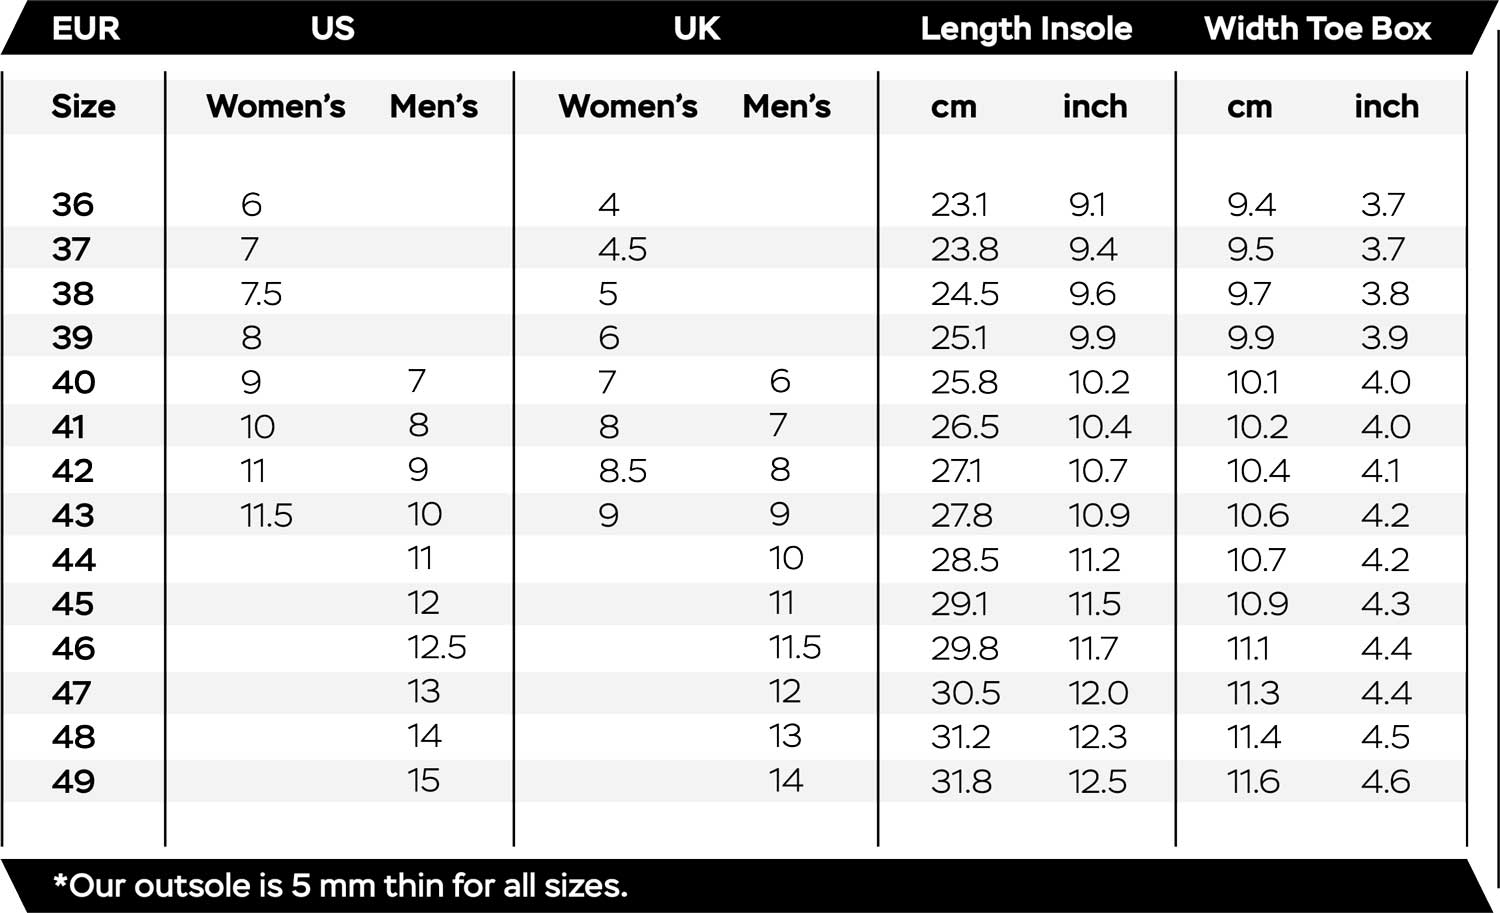 Sizing guide for our shoes